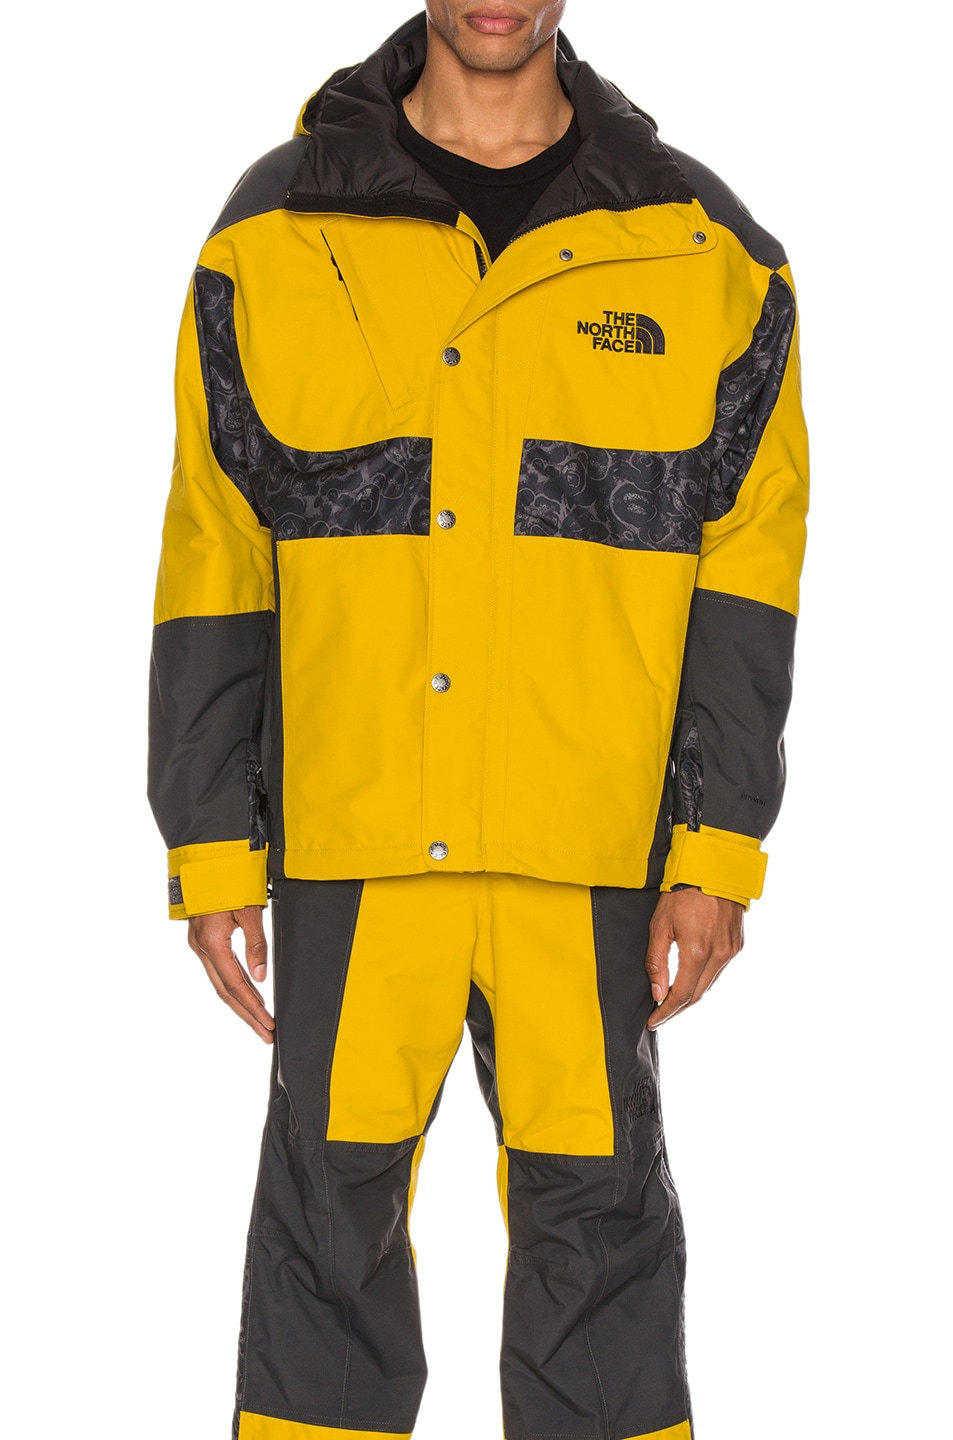 Image 1 of The North Face Black 94 Rage WP Synthetic Insulated Jacket in Leopard Yellow & Asphalt Grey